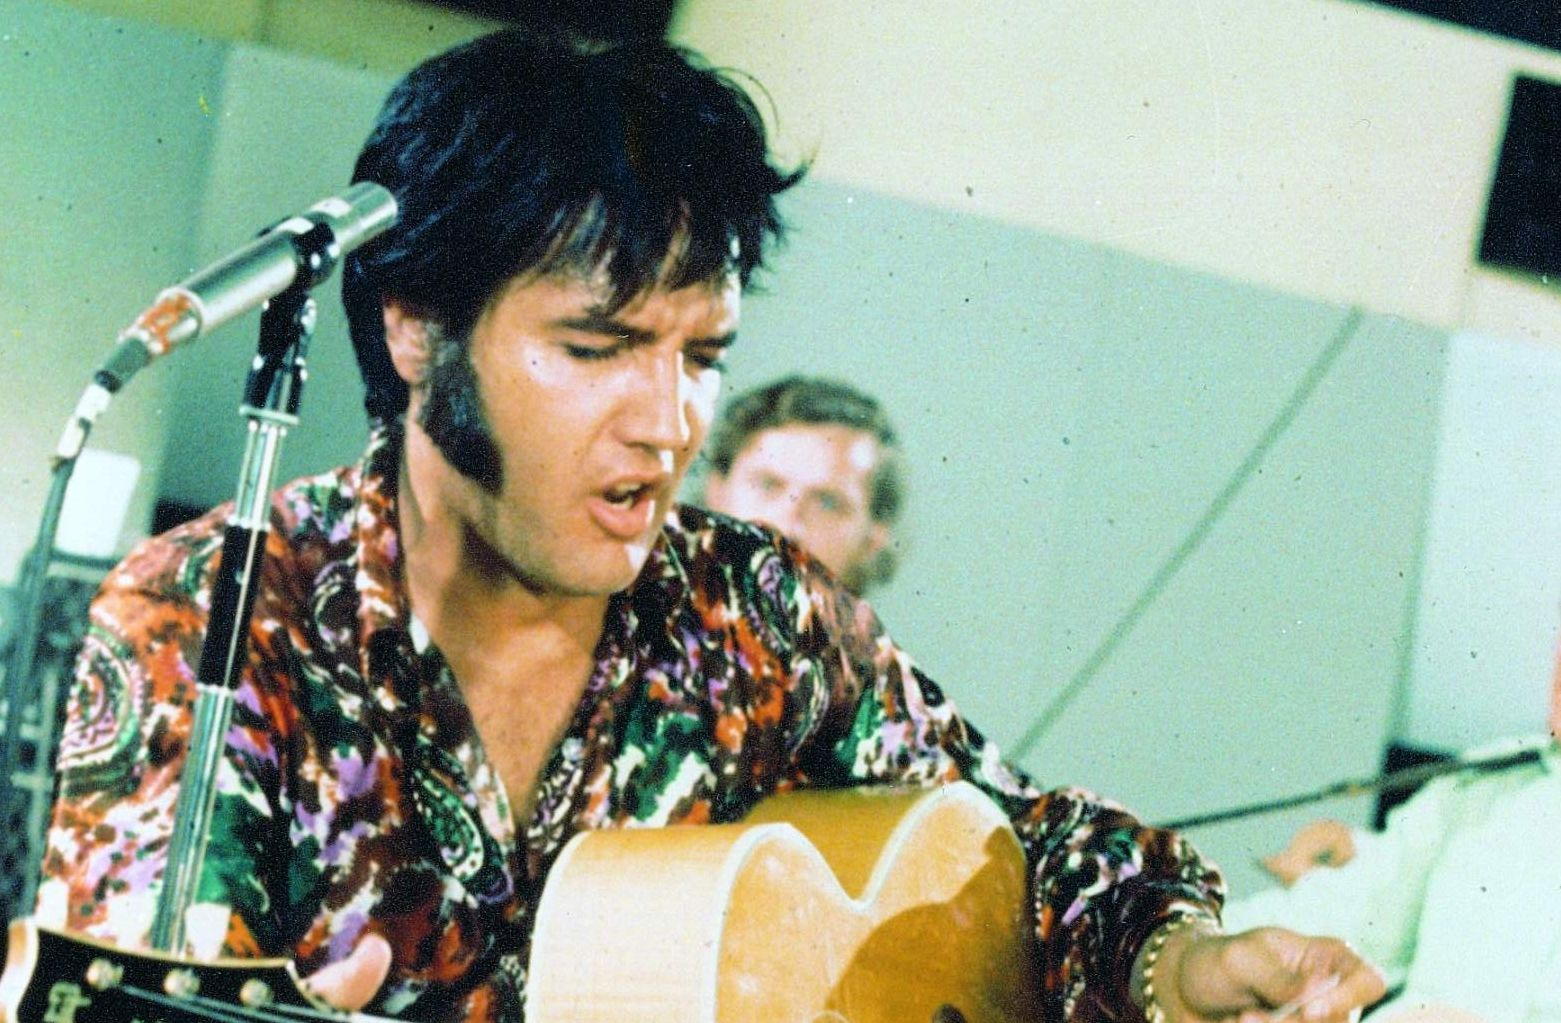 That shirt is now at Graceland behind a glass case. 1970s